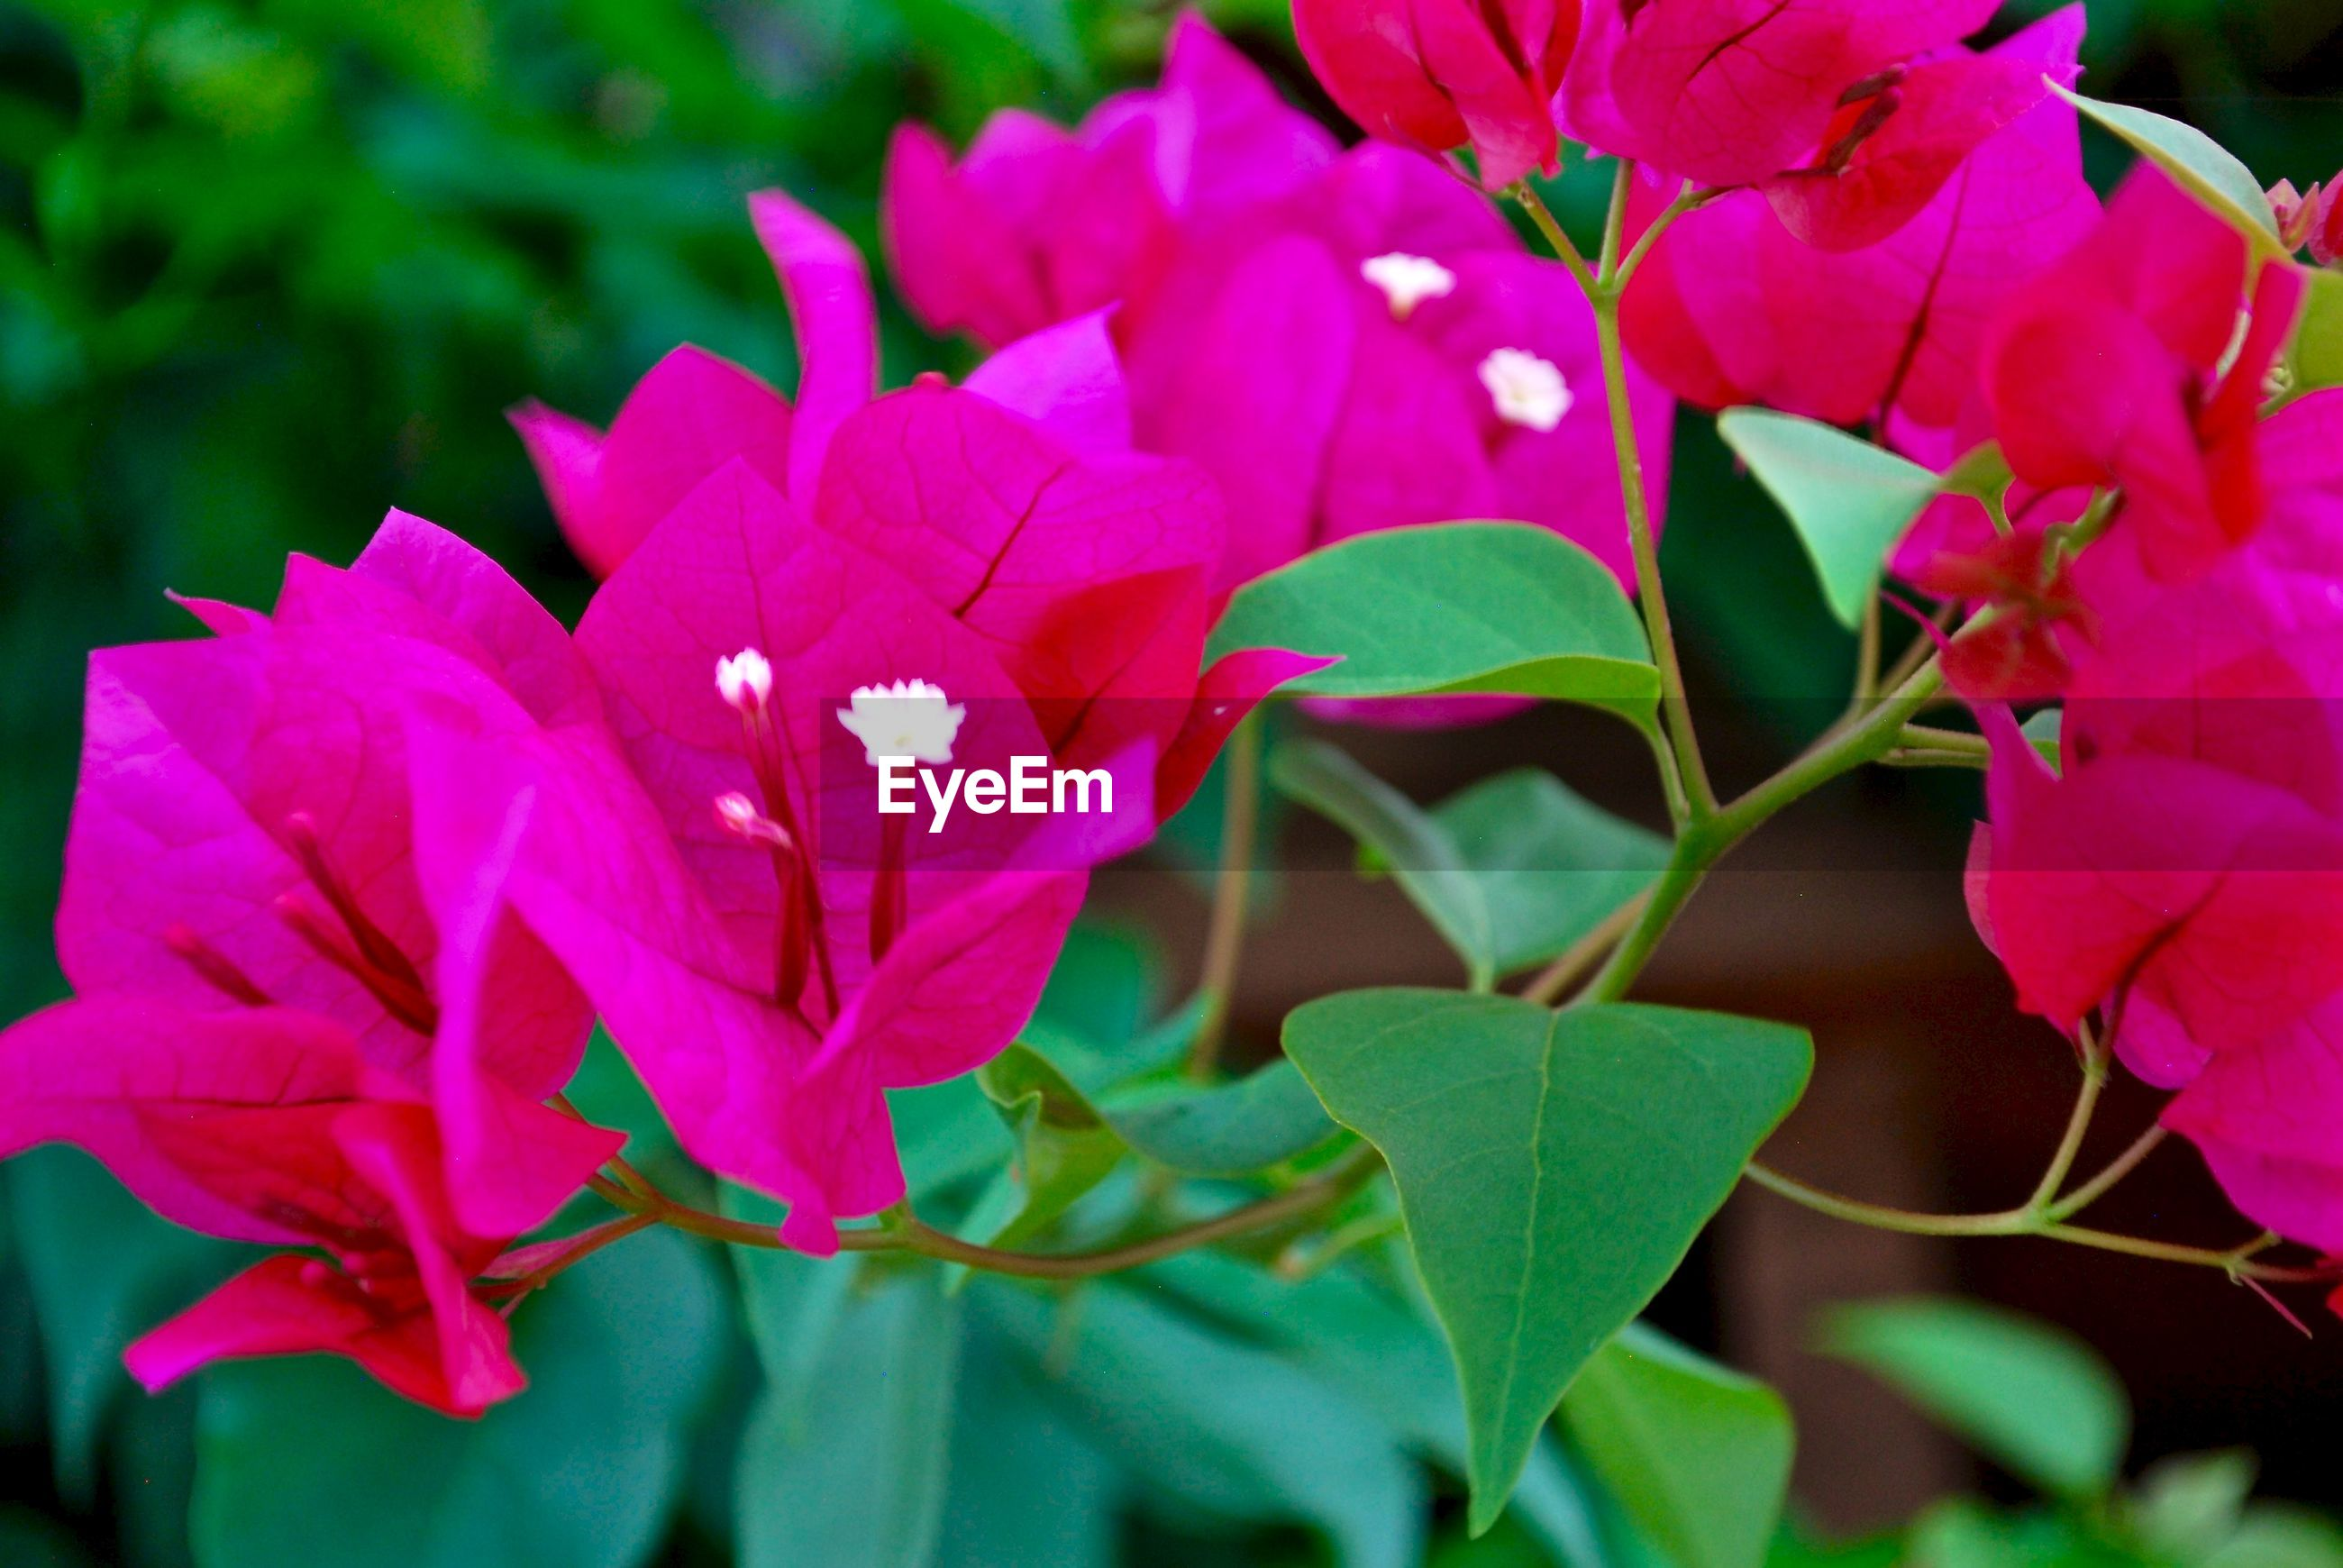 CLOSE-UP OF PINK FLOWERS BLOOMING